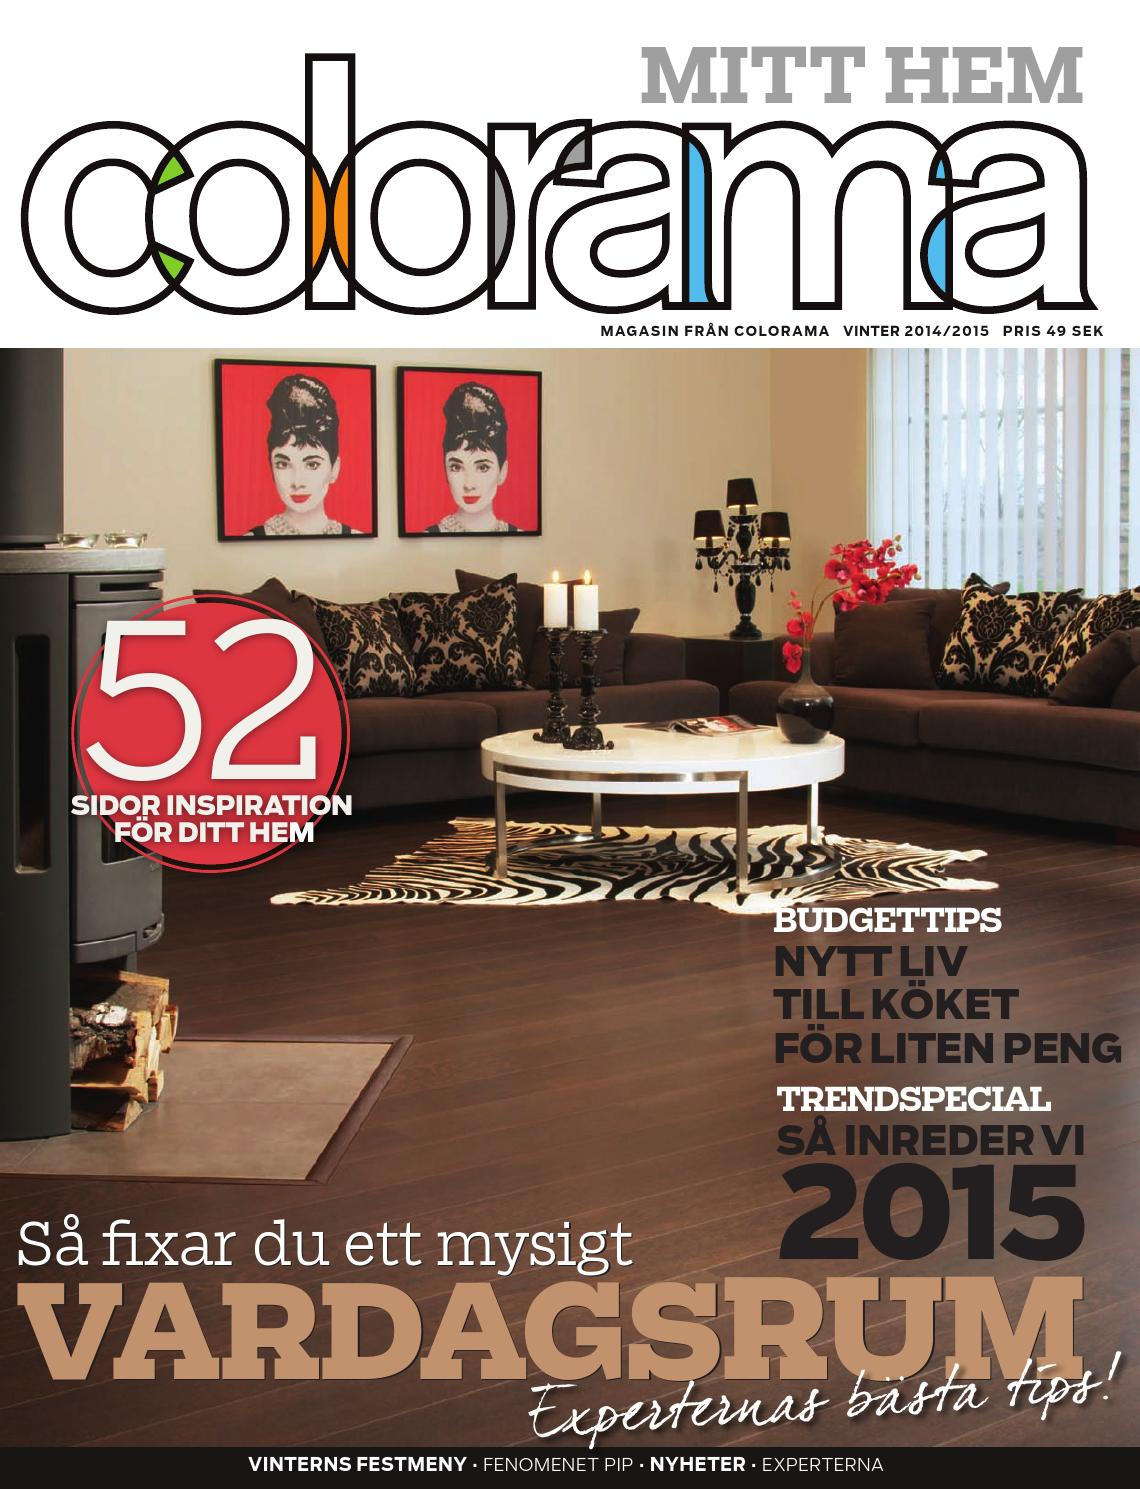 Colorama mitt hem, 2014 5 vinter by colorama   issuu